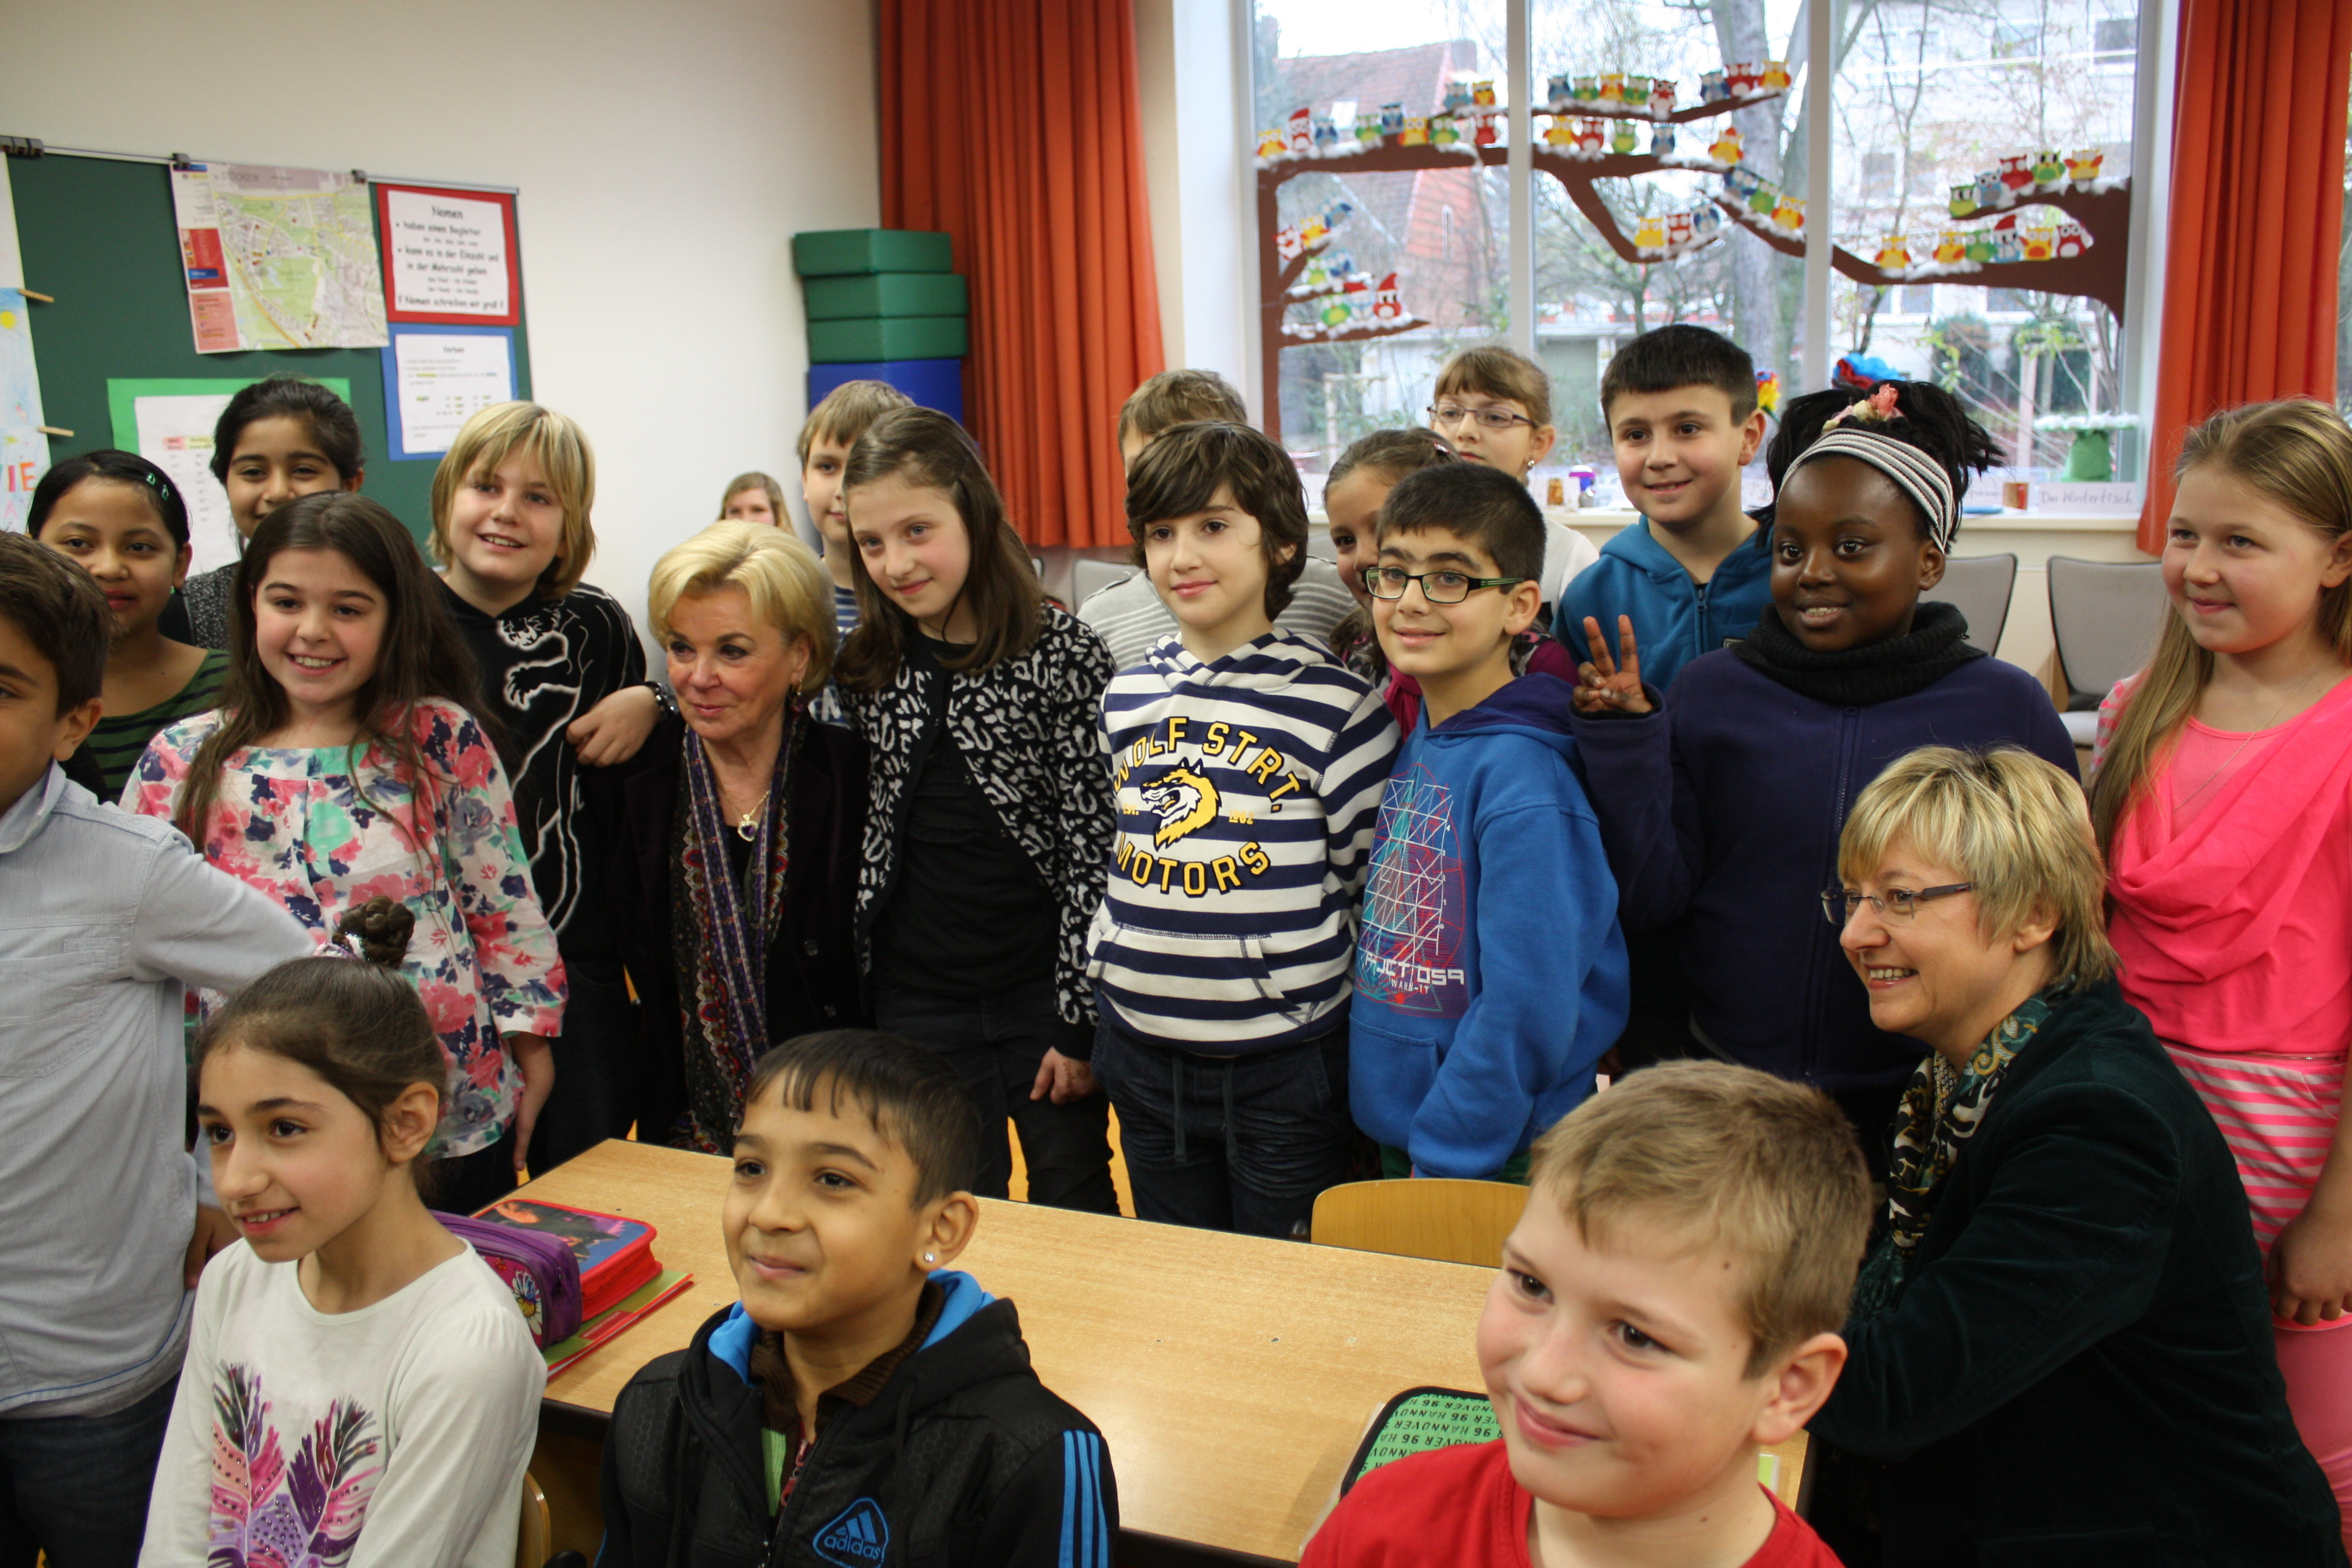 Liz Mohn surrounded by many students in a classroom